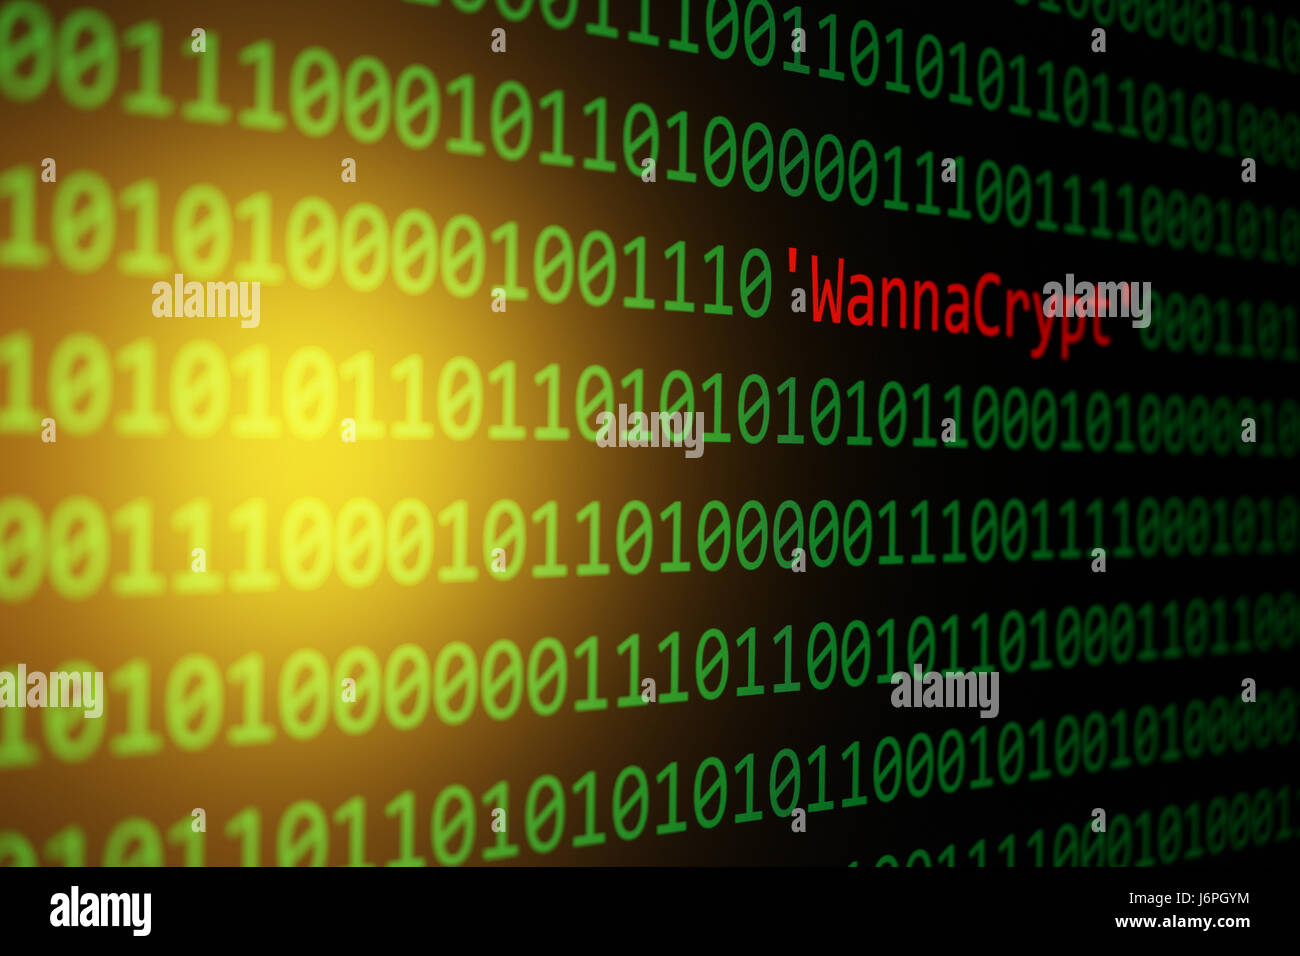 The WannaCrypt and Binary code, The WannaCry and RansomWare, Concept Security and Malware attack. - Stock Image